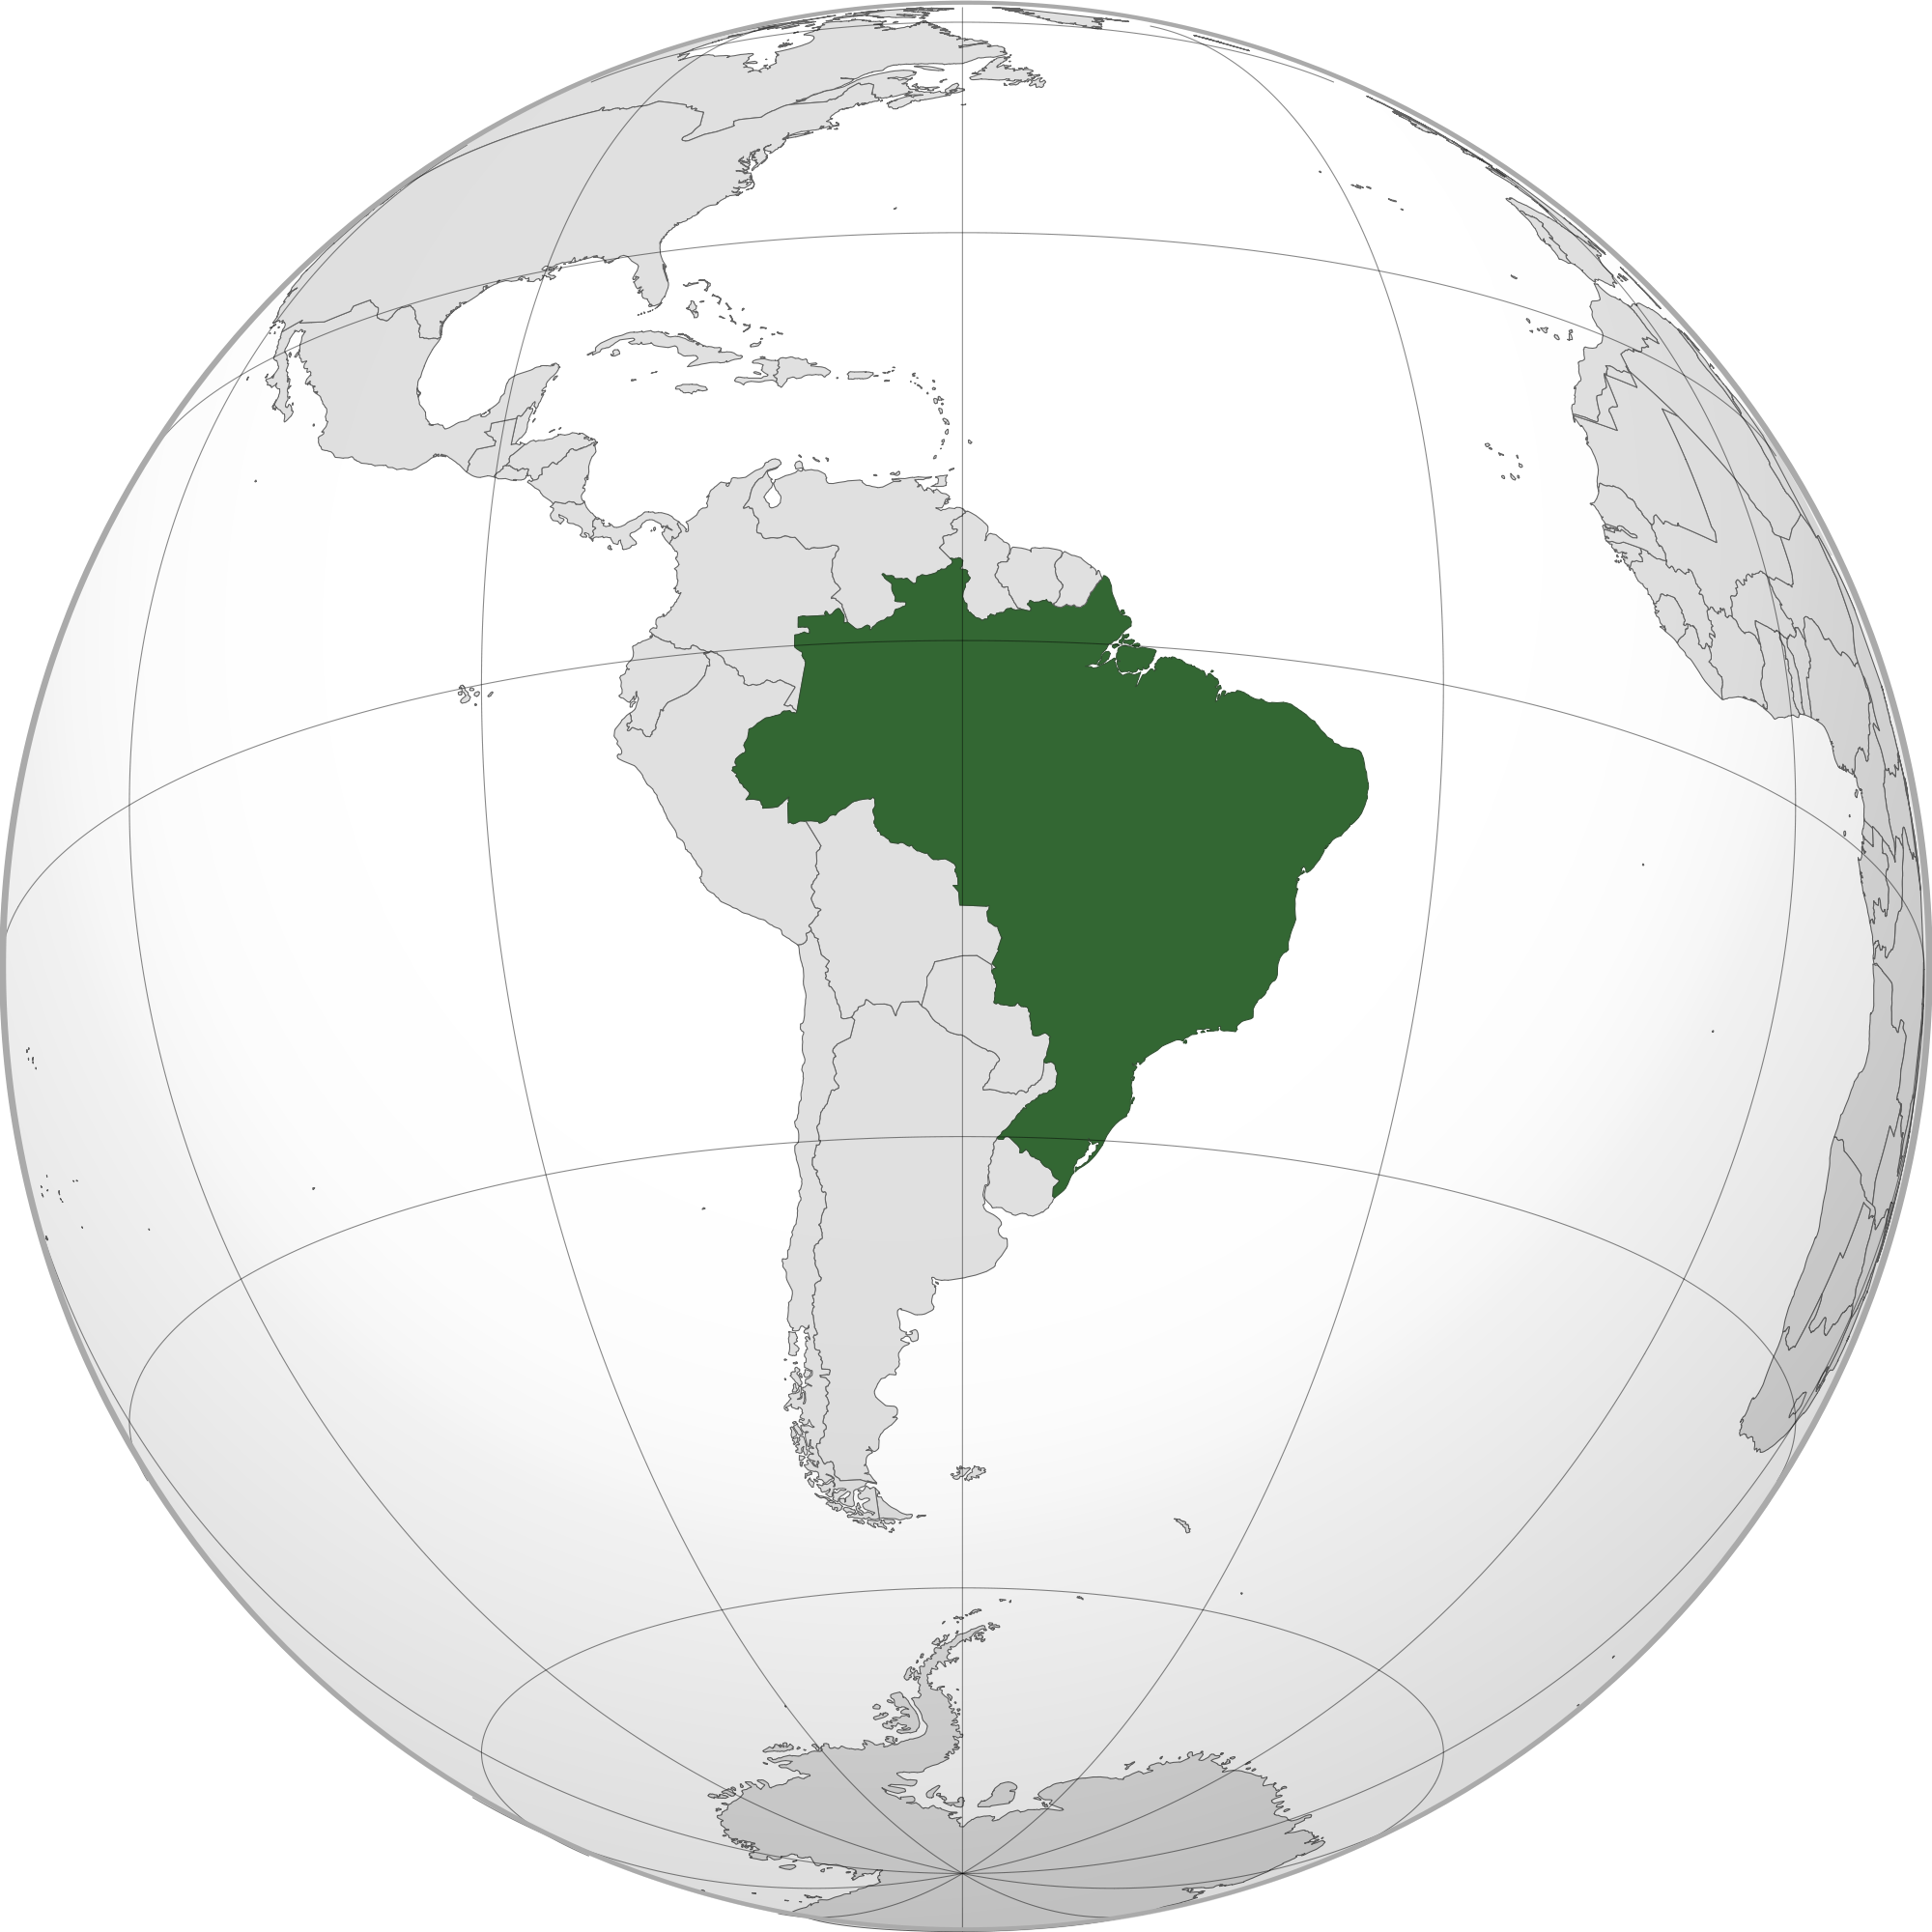 brazil in the world map Location Of The Brazil In The World Map brazil in the world map